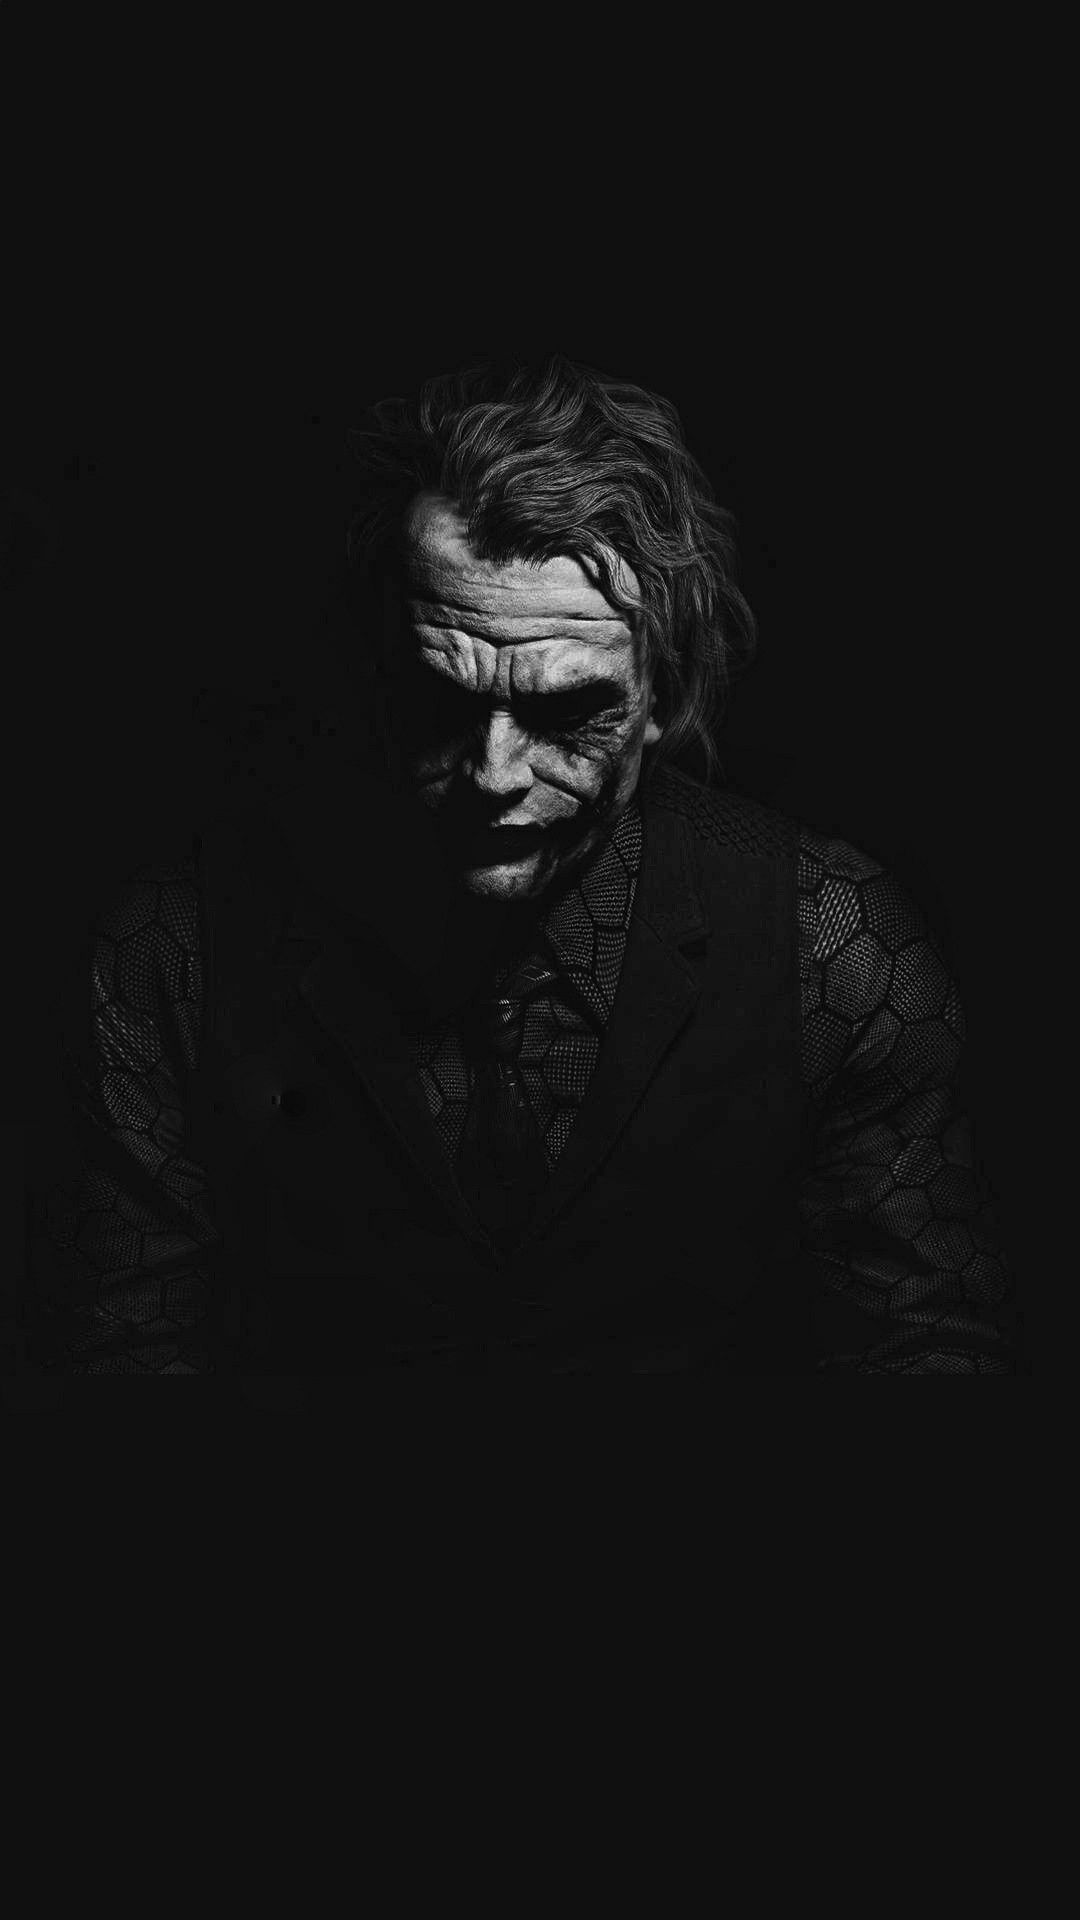 Dark Wallpaper Joker Wallpapers Joker Pics Batman Joker Wallpaper